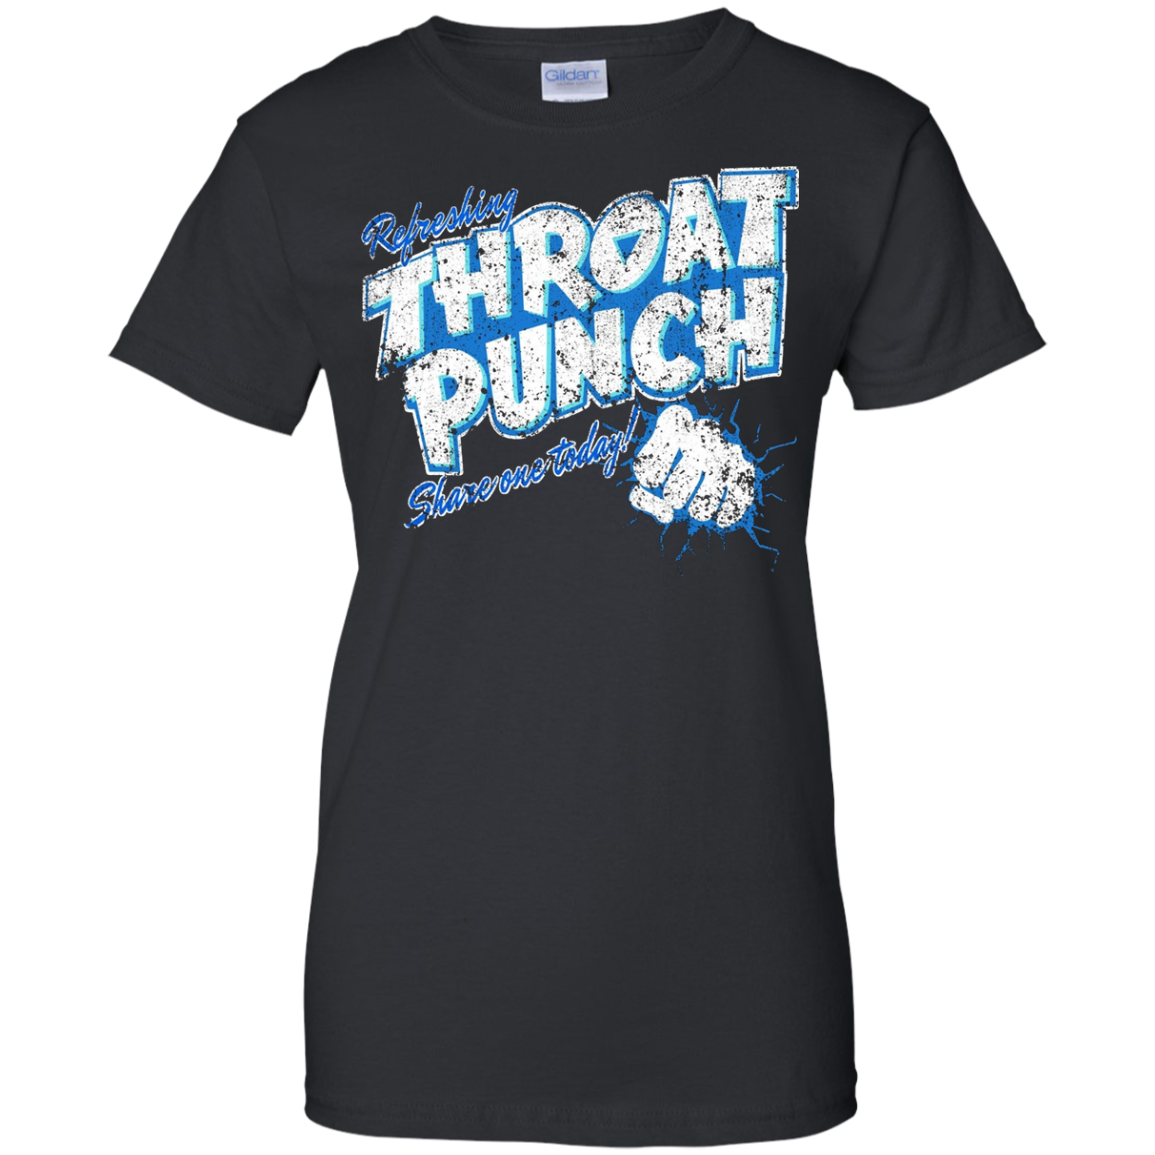 Refreshing Throat Punch Grunge T-Shirt